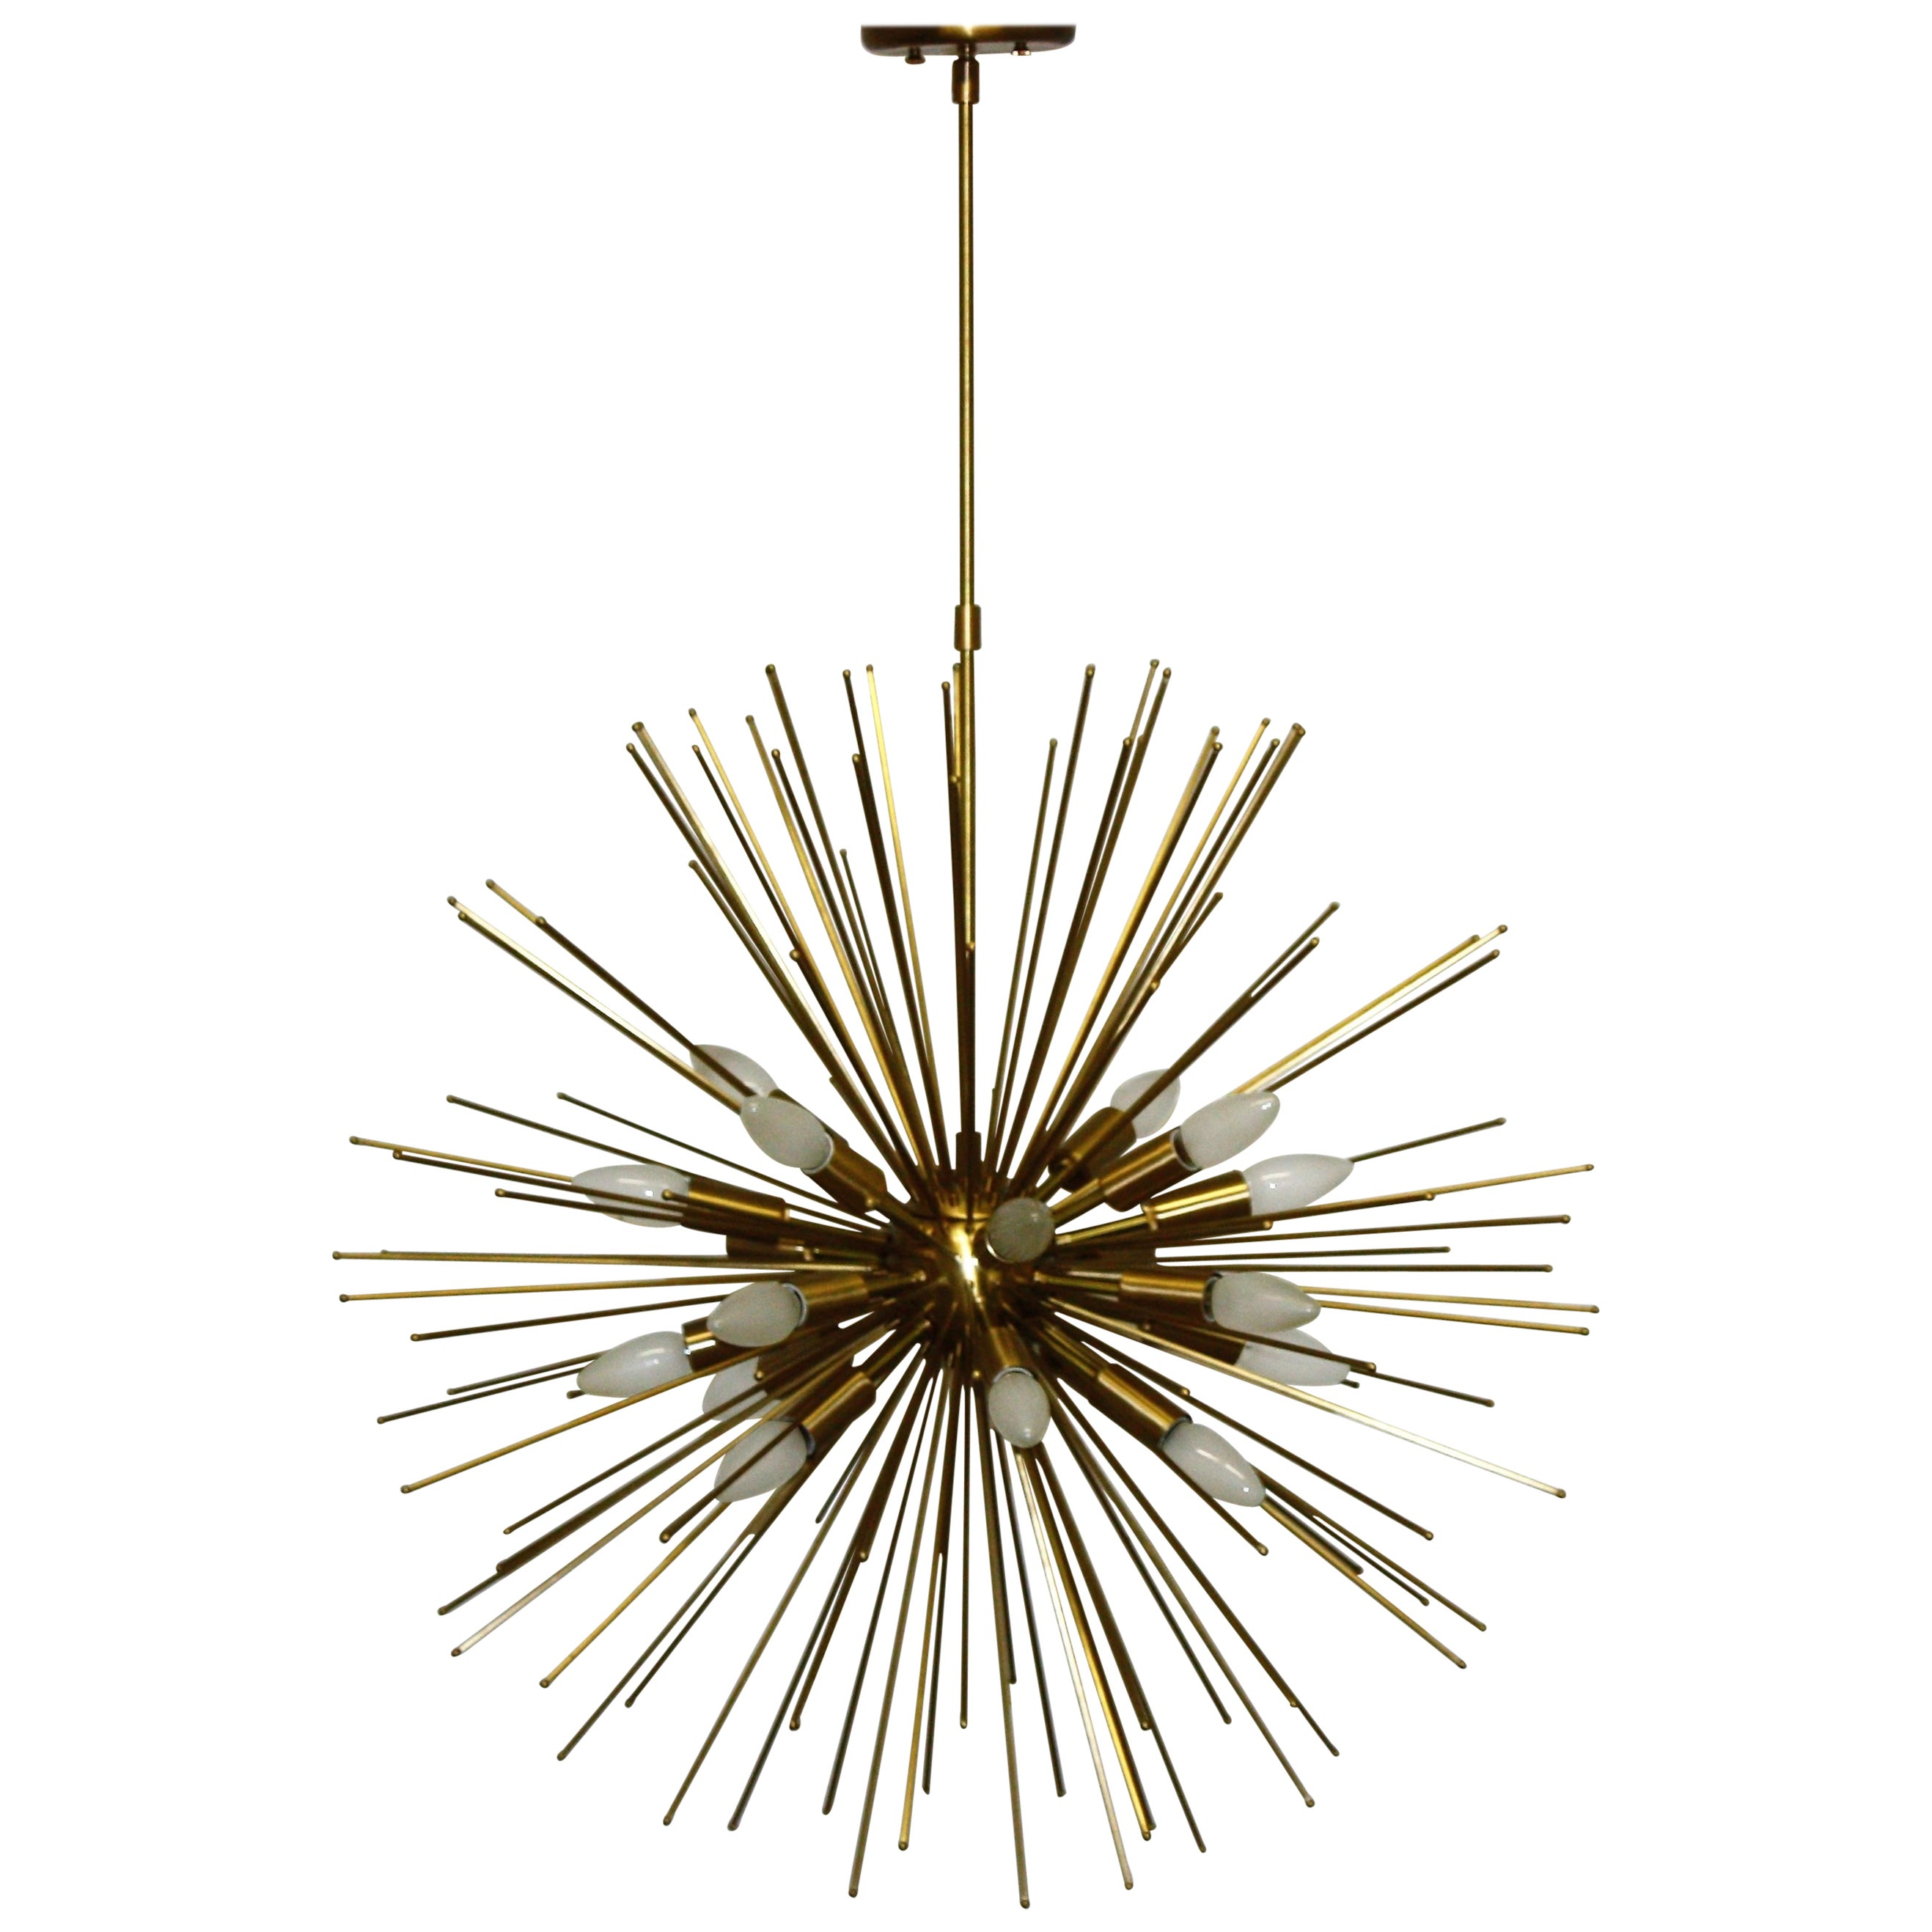 cornwall home chandelier featured house urchin the bent giant danielles media modern tom zinio danielle raffield inside pdf rustic as blogs in country flock living steam and s